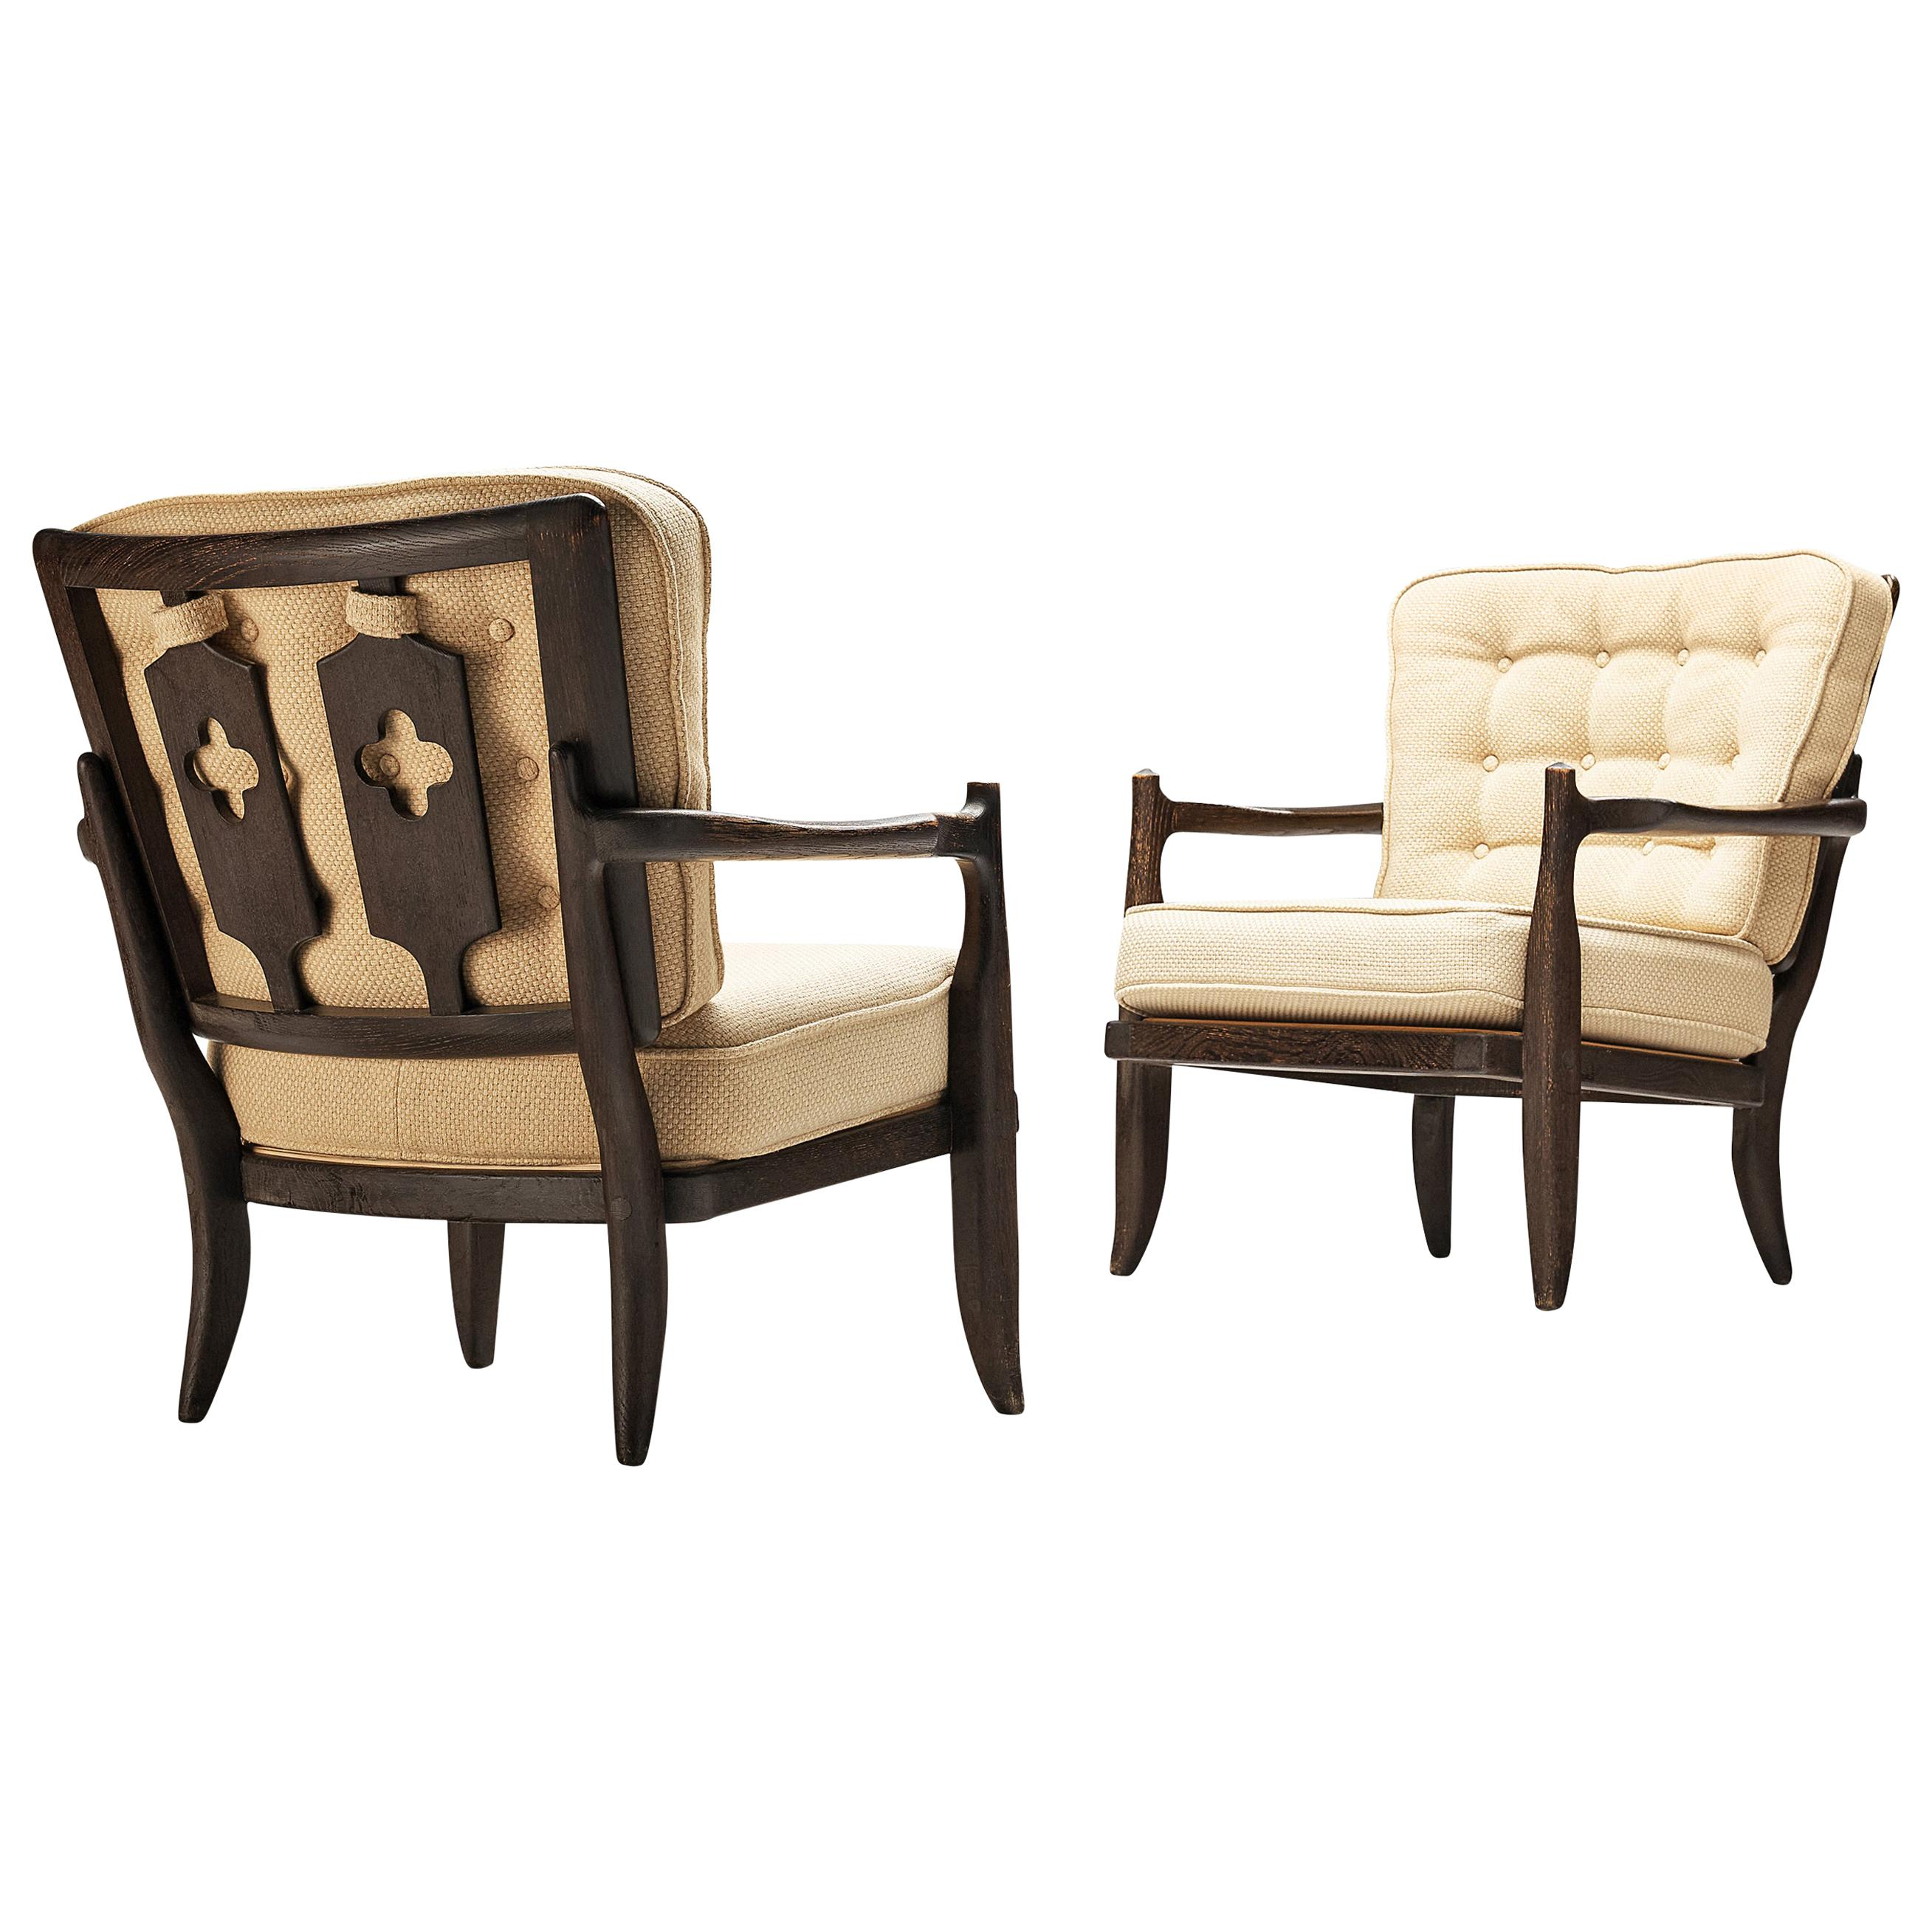 Guillerme et Chambron Pair of Lounge Chairs Model 'Jose' in Oak